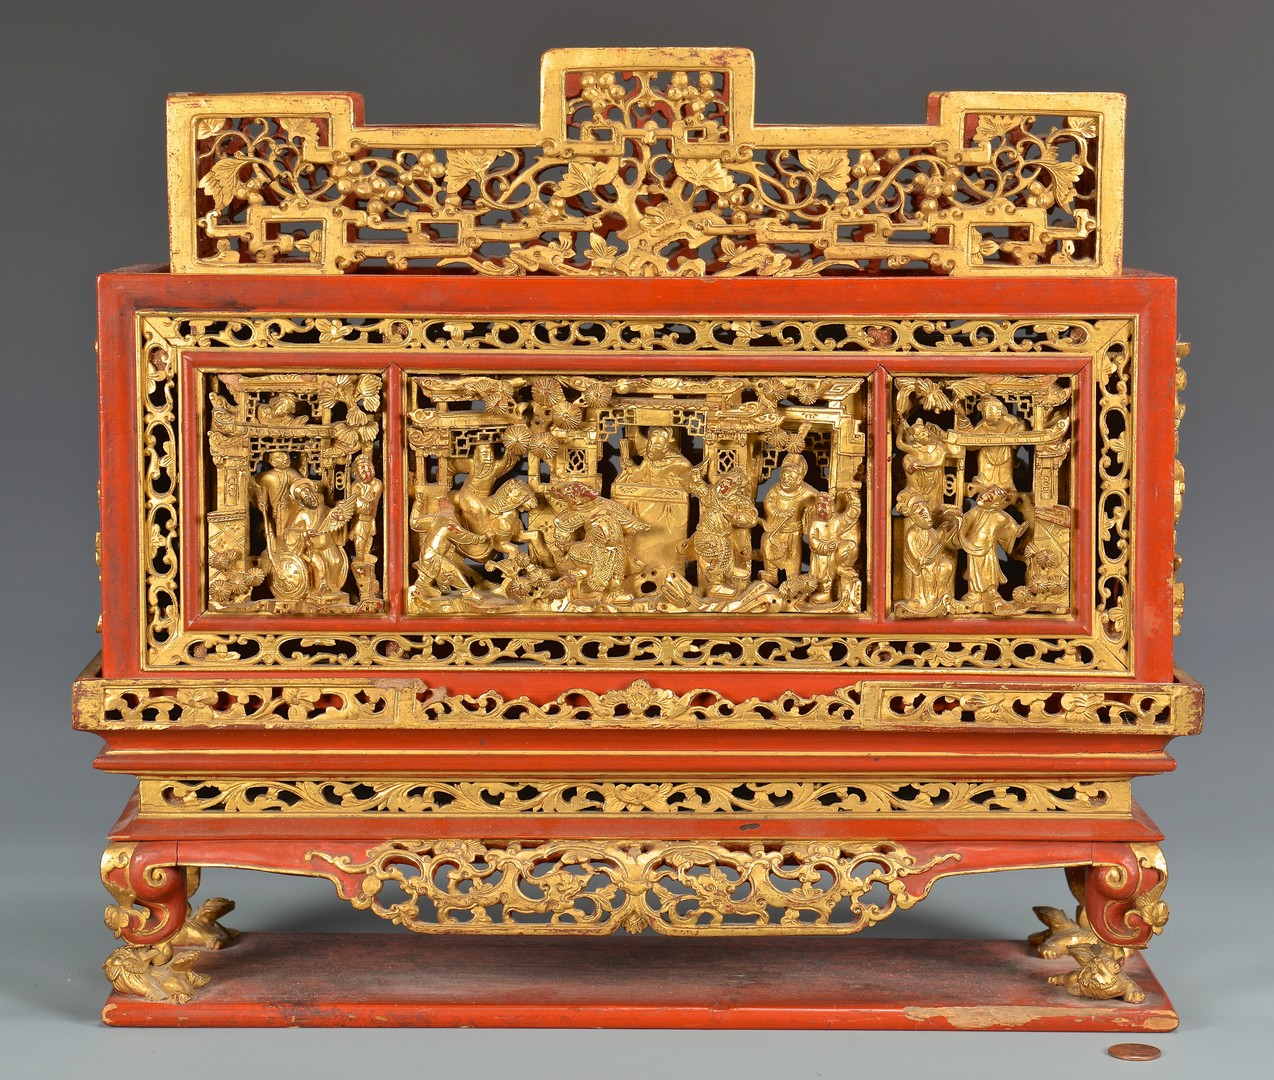 Lot 397: Chinese Gilt Carved Altar or Shrine